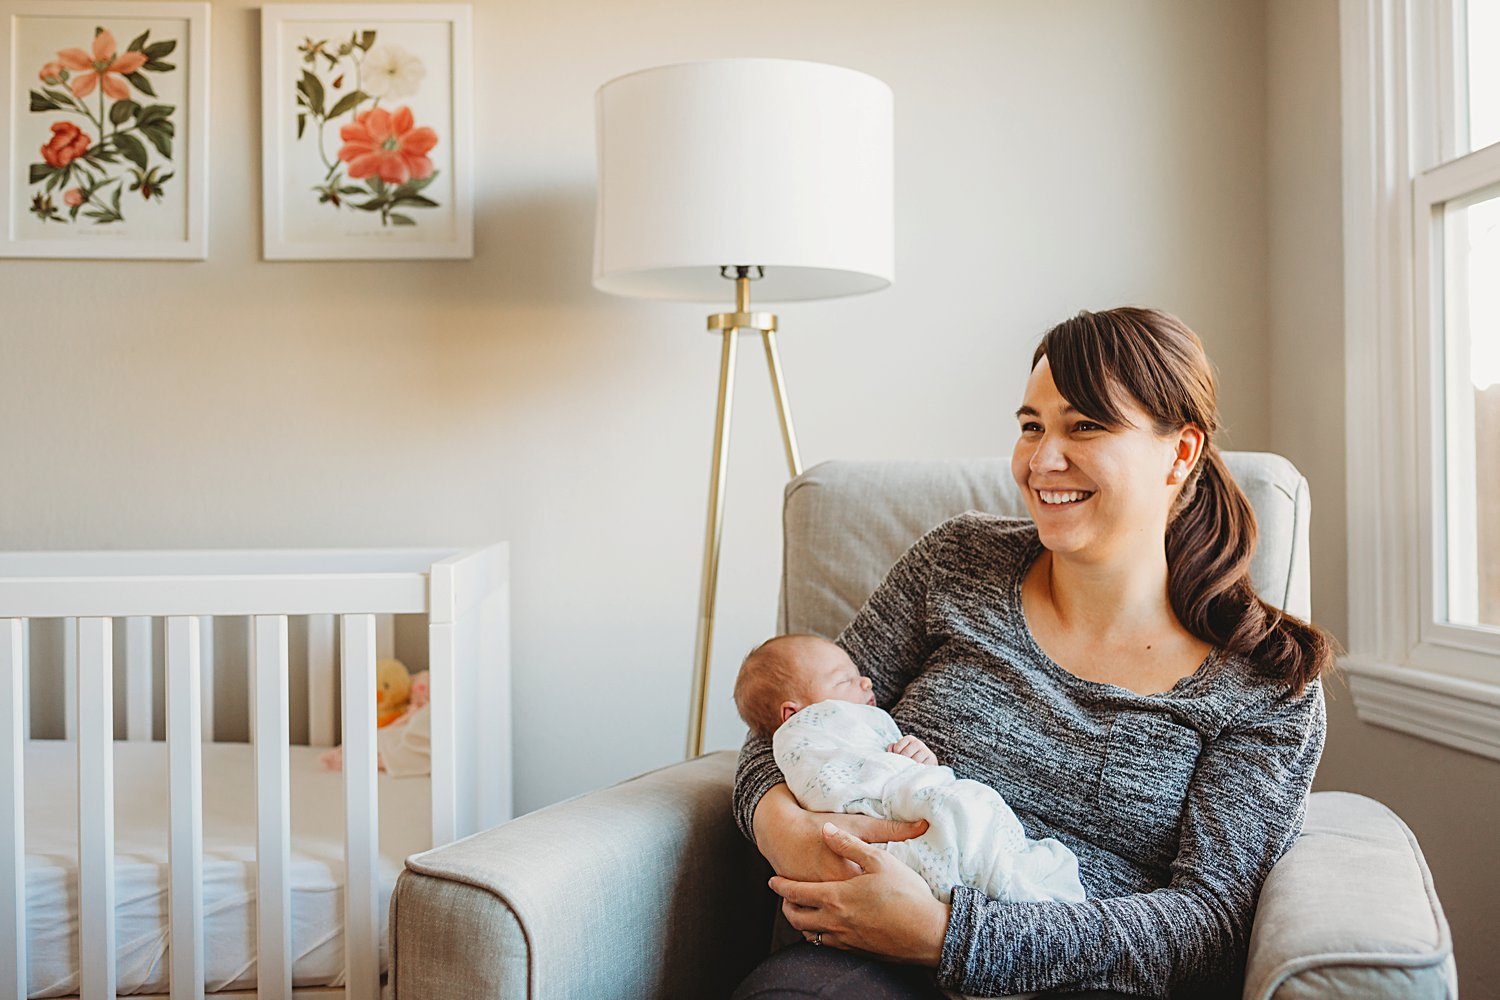 Mom holding newborn baby girl in arms while sitting in chair in nursery